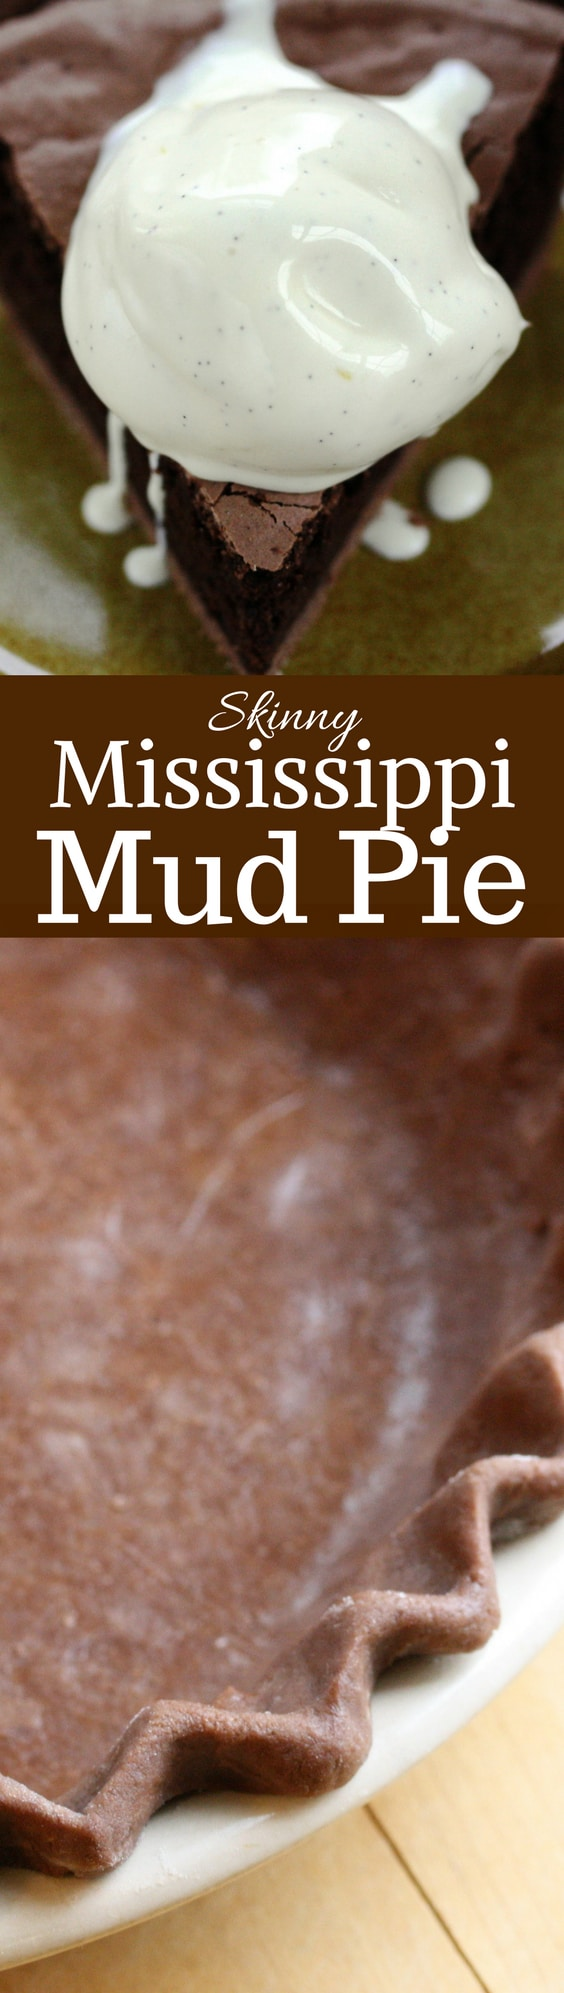 Skinny Mississippi Mud Pie - a deliciously light pie with a nice chocolate flavor, crunchy top and soft cake-light middle wrapped up in an easy chocolate crust www.savingdessert.com